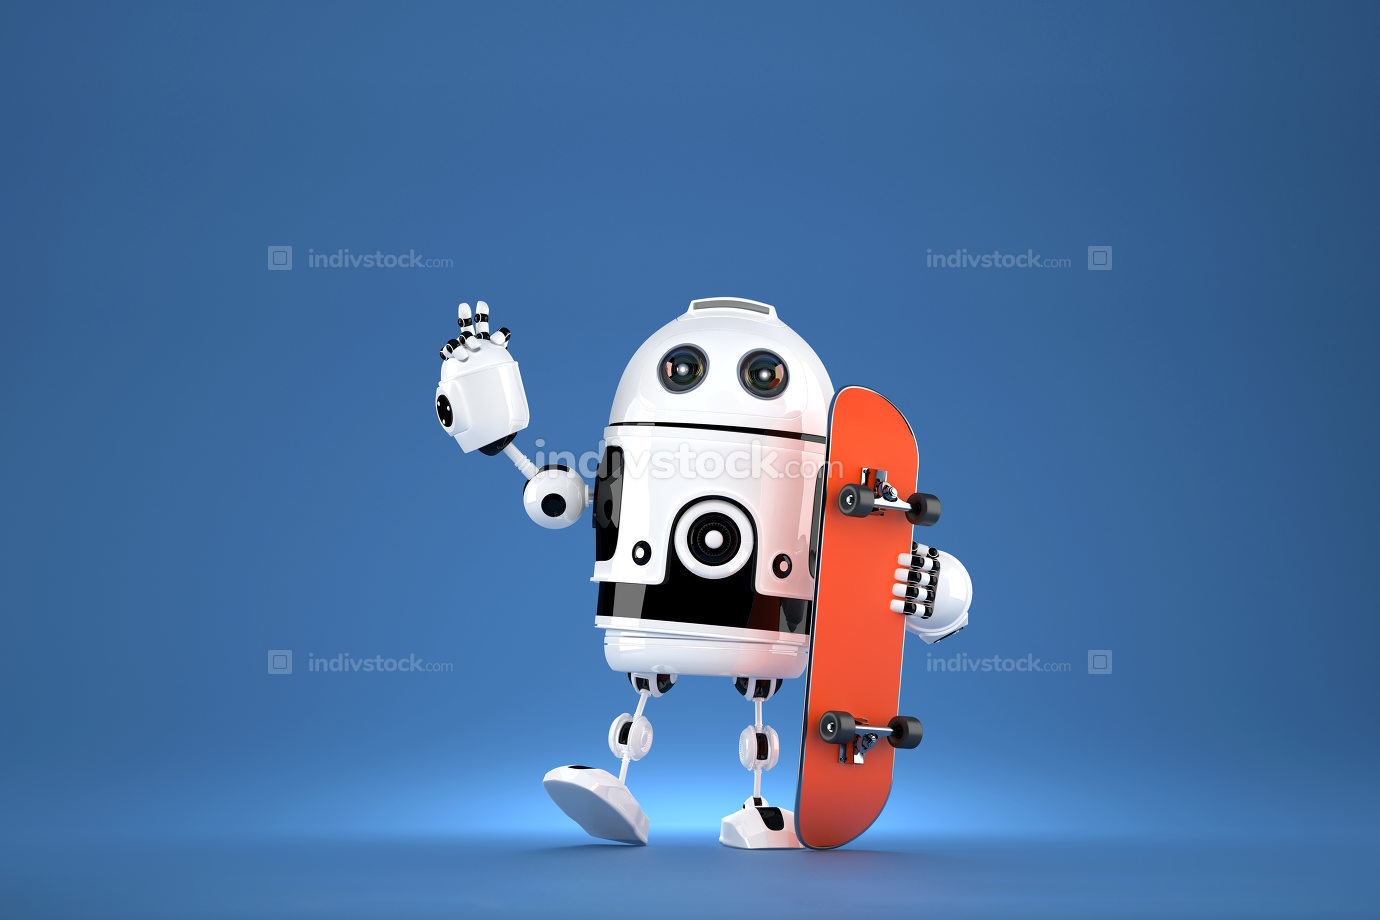 3D Robot with skateboard. 3D illustration. Contains clipping path